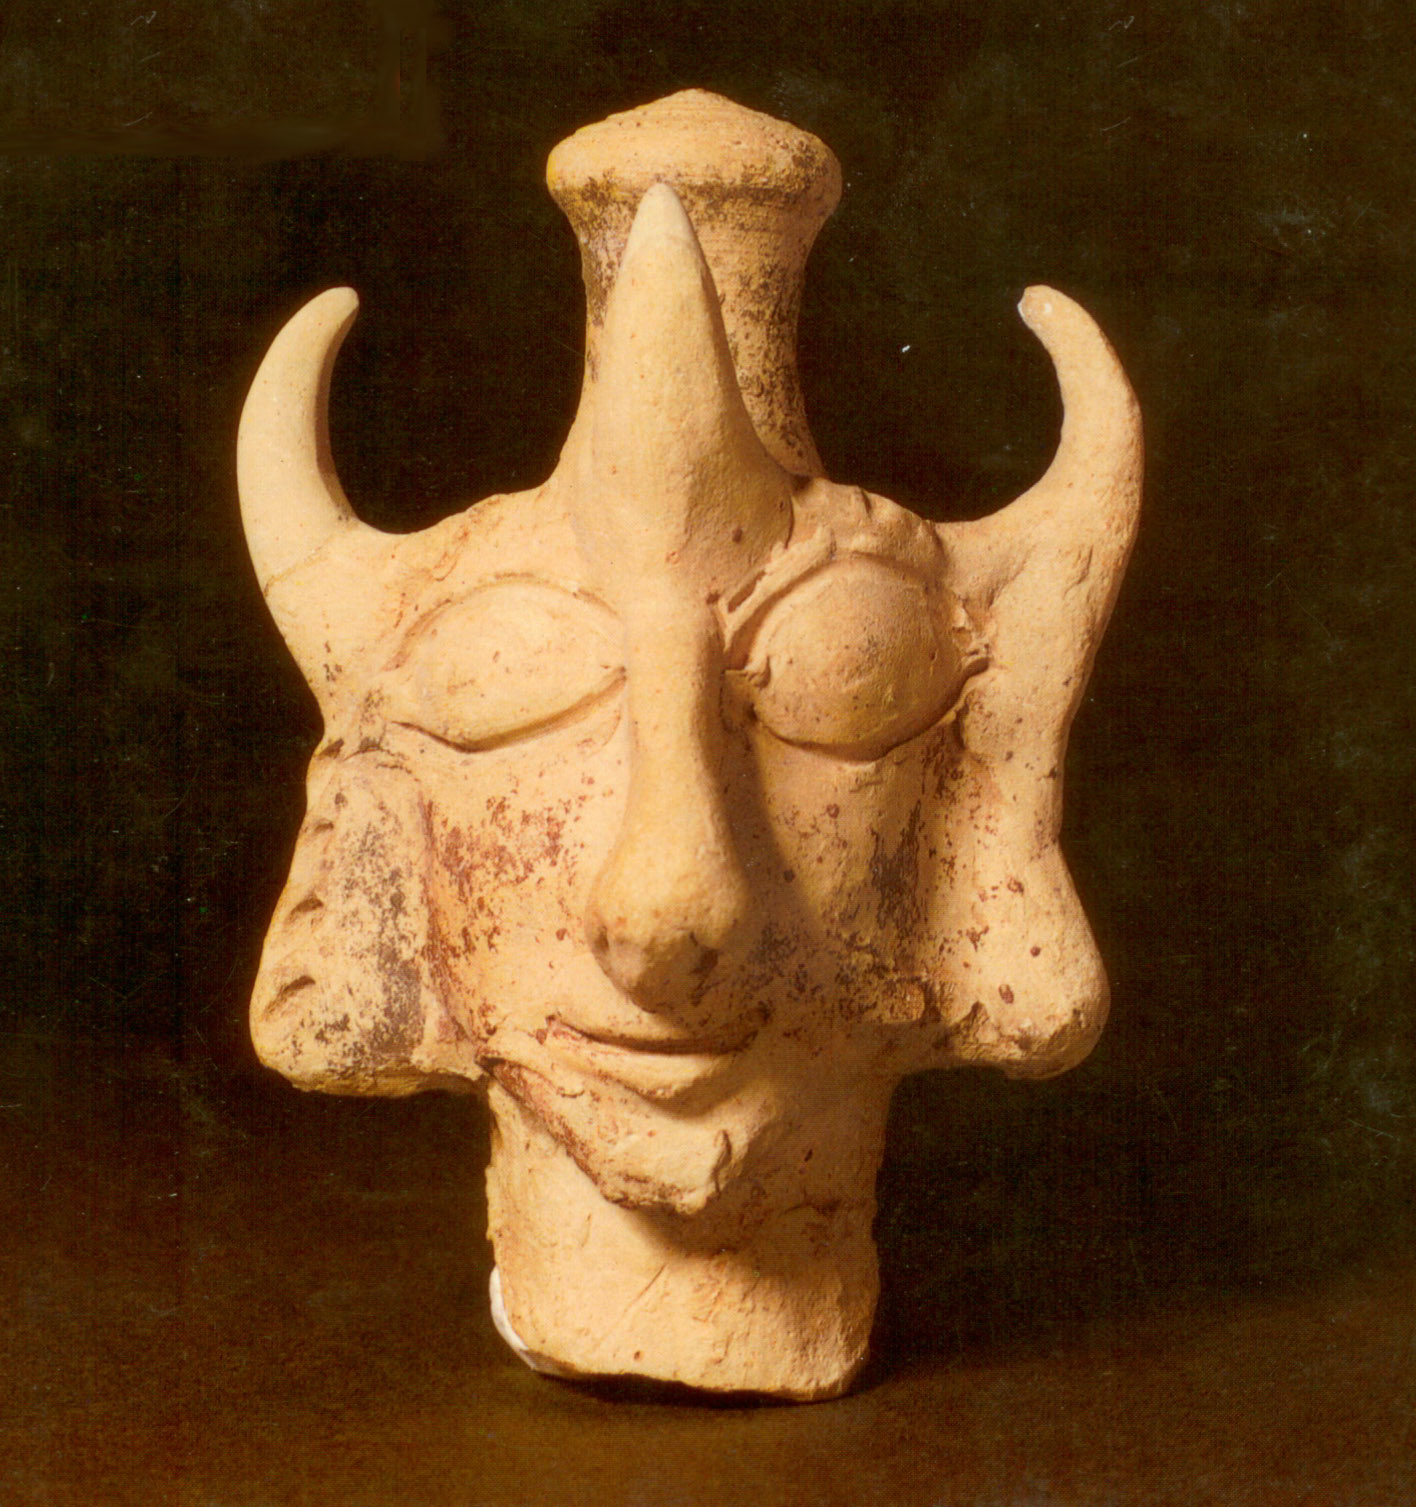 edomite horned figure